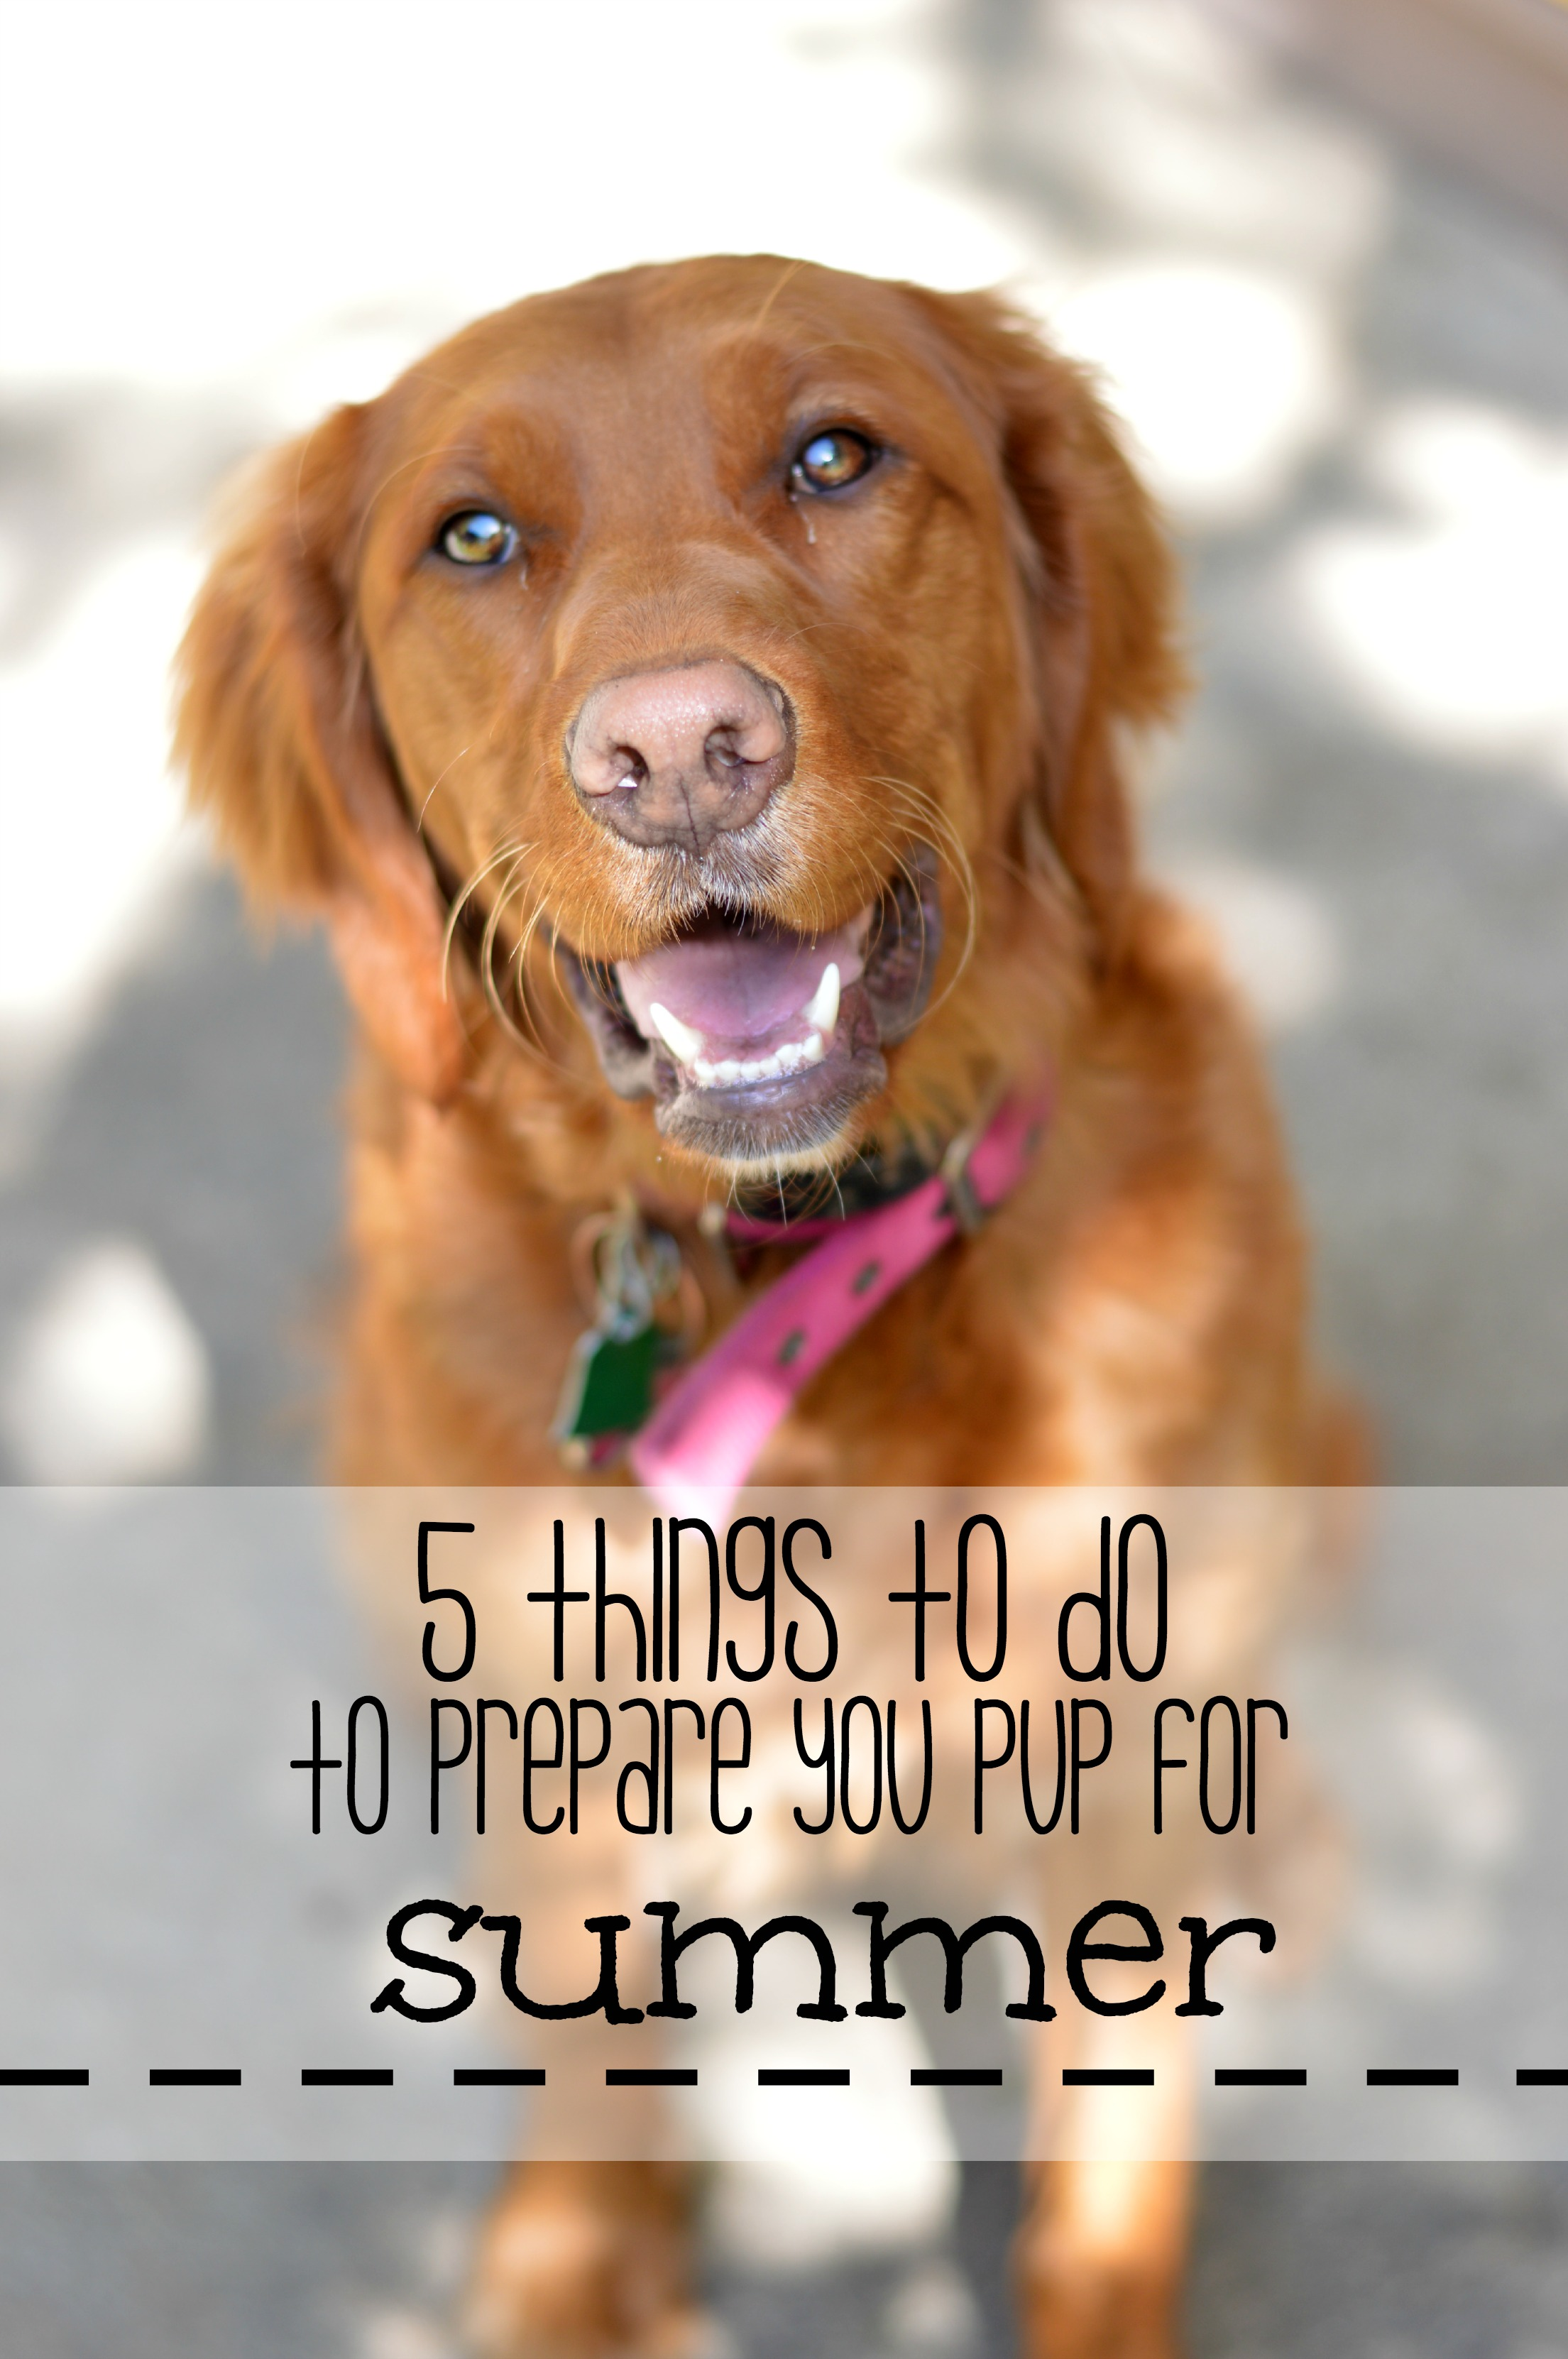 5 things to do to prepare your pup for summer! Be sure your dog is being checked for ticks, on heartworm meds and having the pads on their paws checked! // Life with Rosie